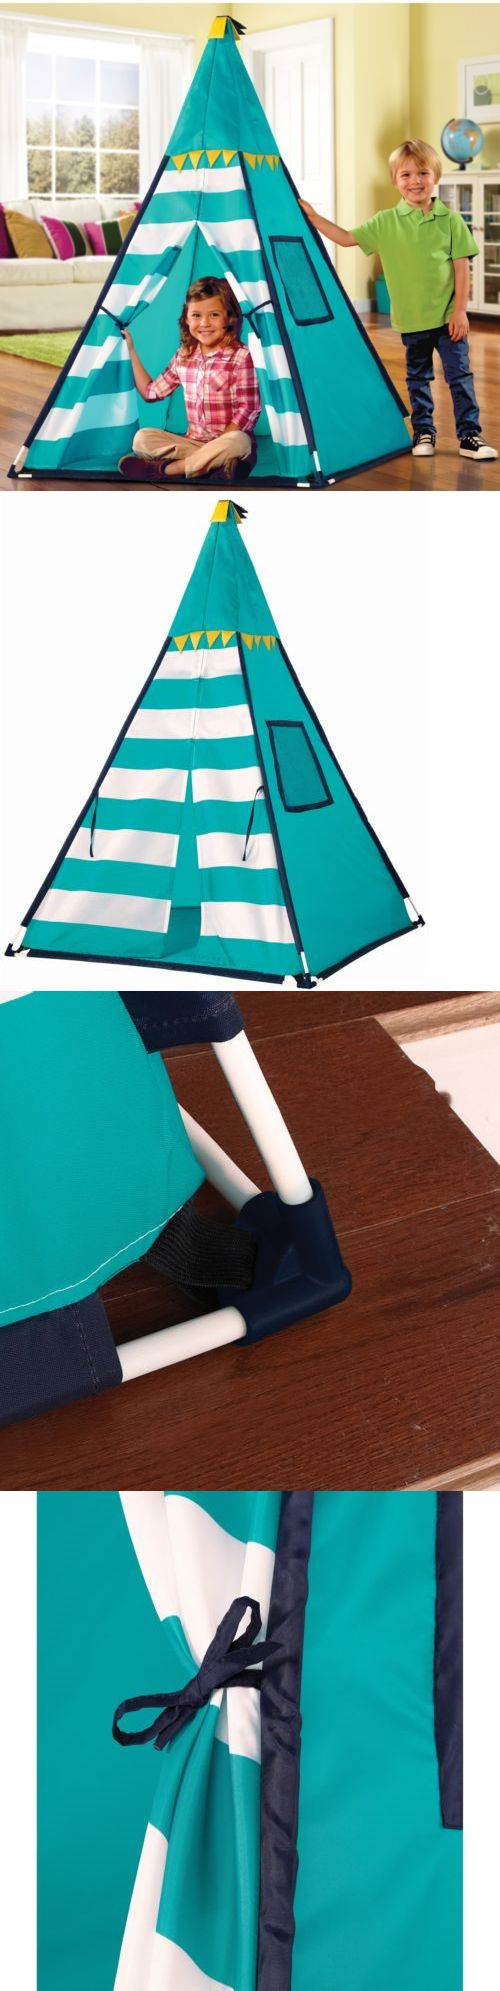 best 25 teepee for kids ideas only on pinterest teepee tutorial